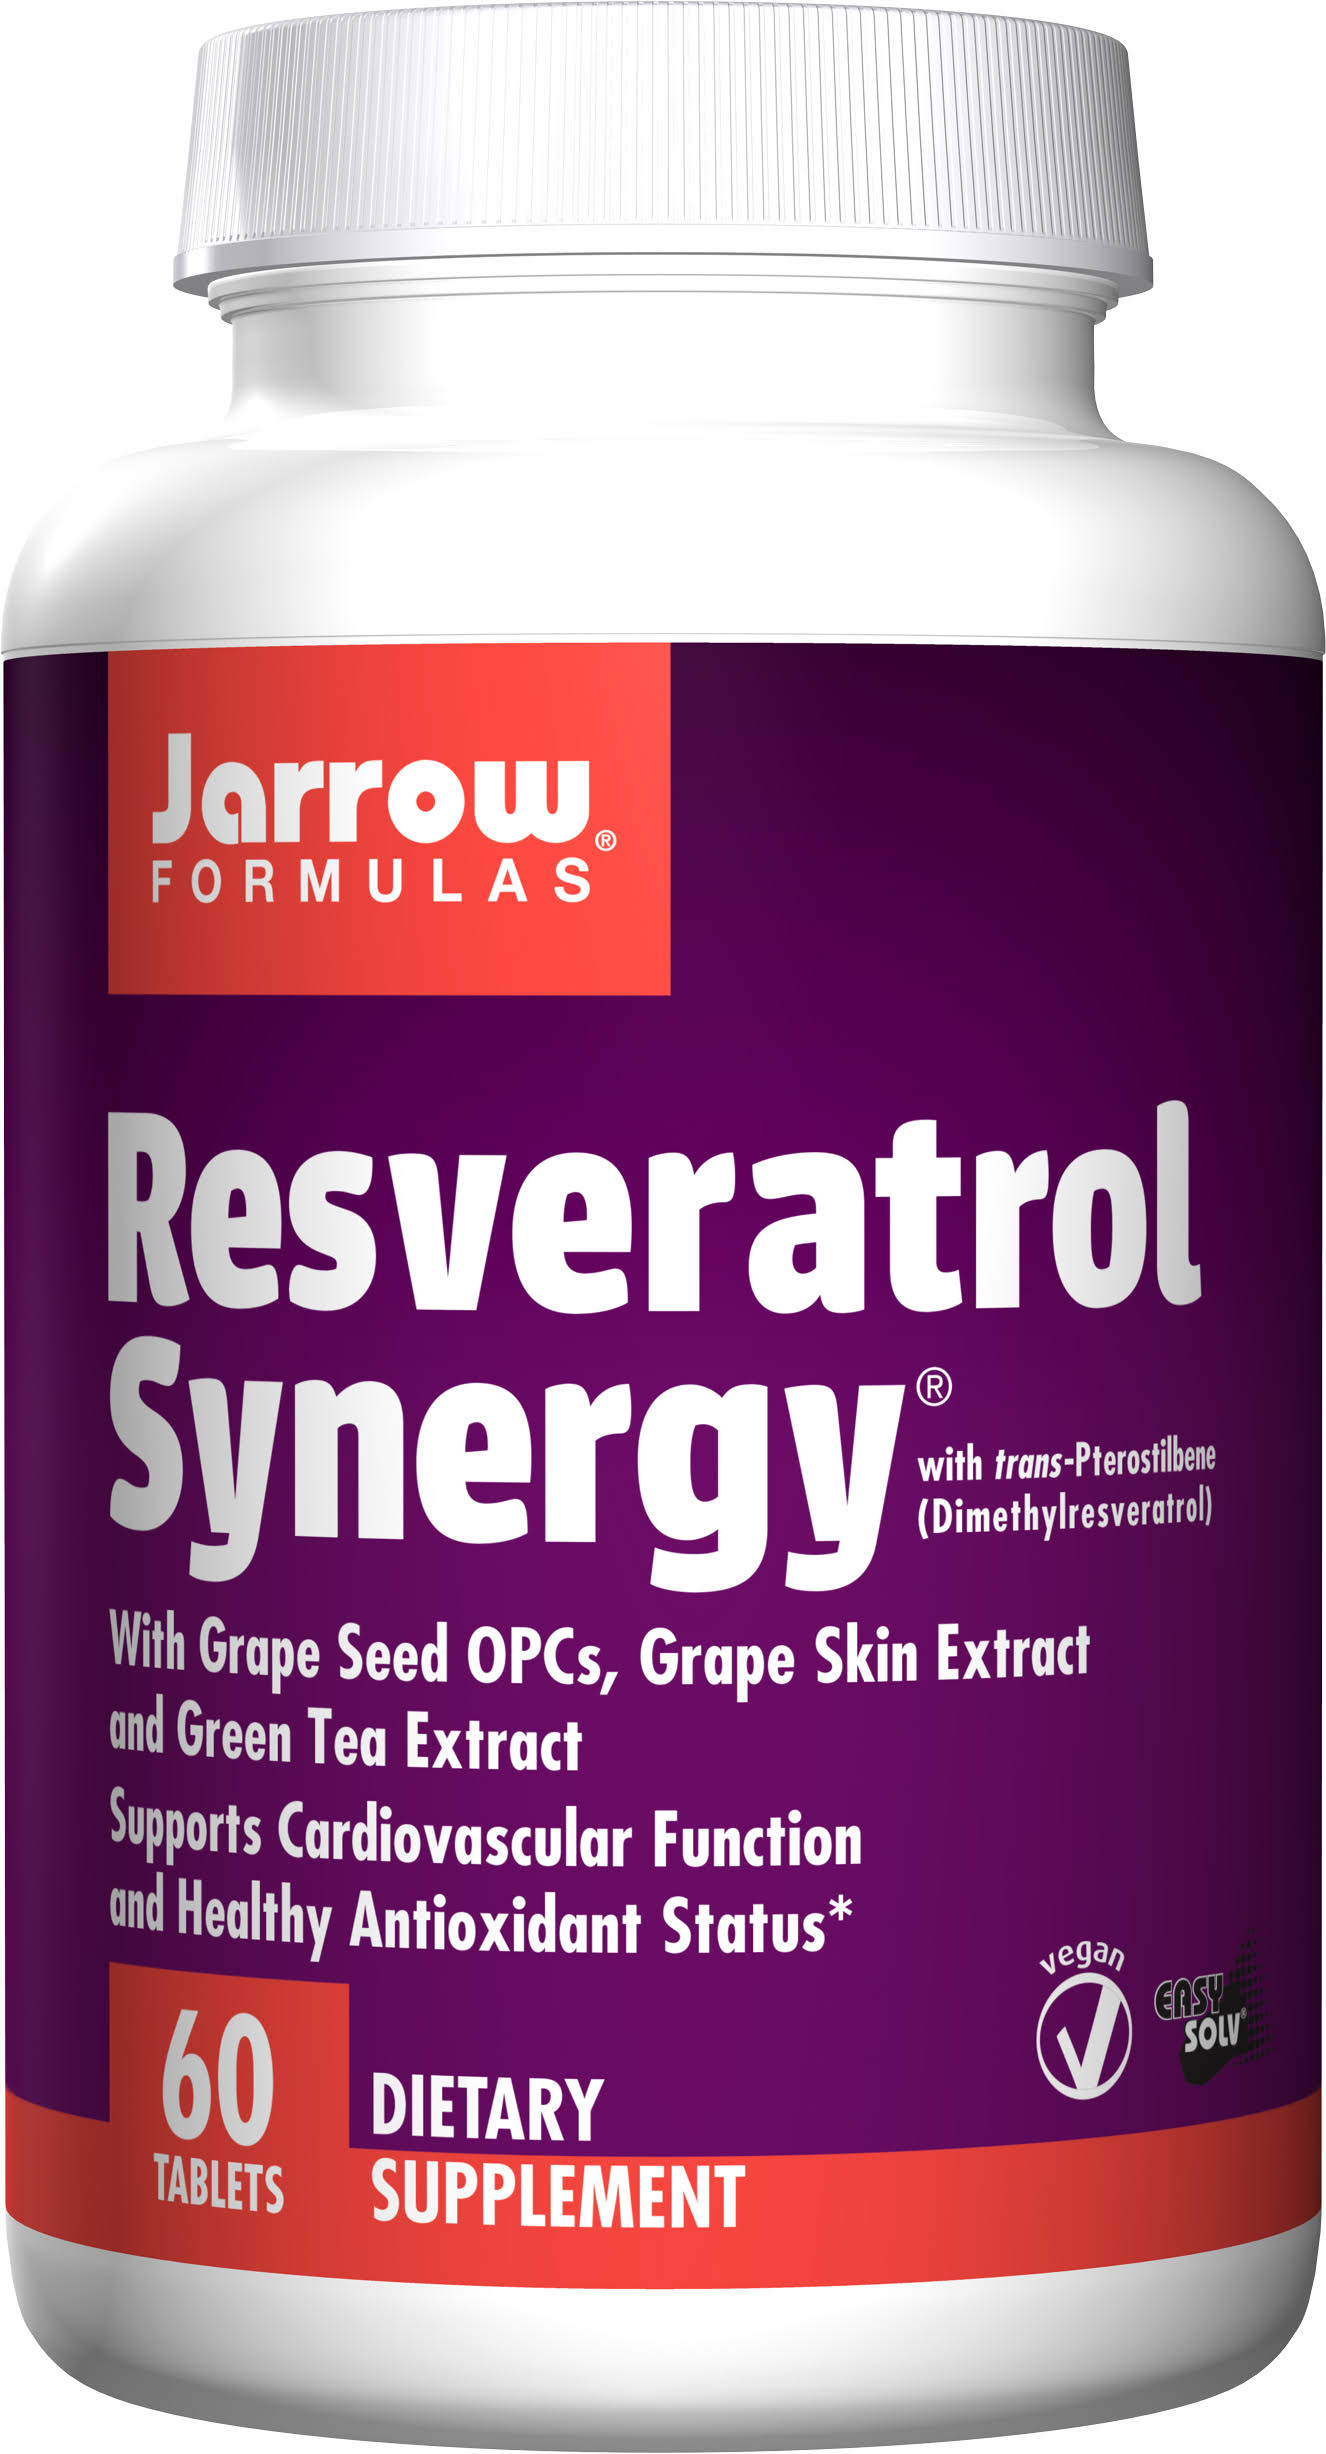 Jarrow Formulas Resveratrol Synergy Supplement - 60 Tablets